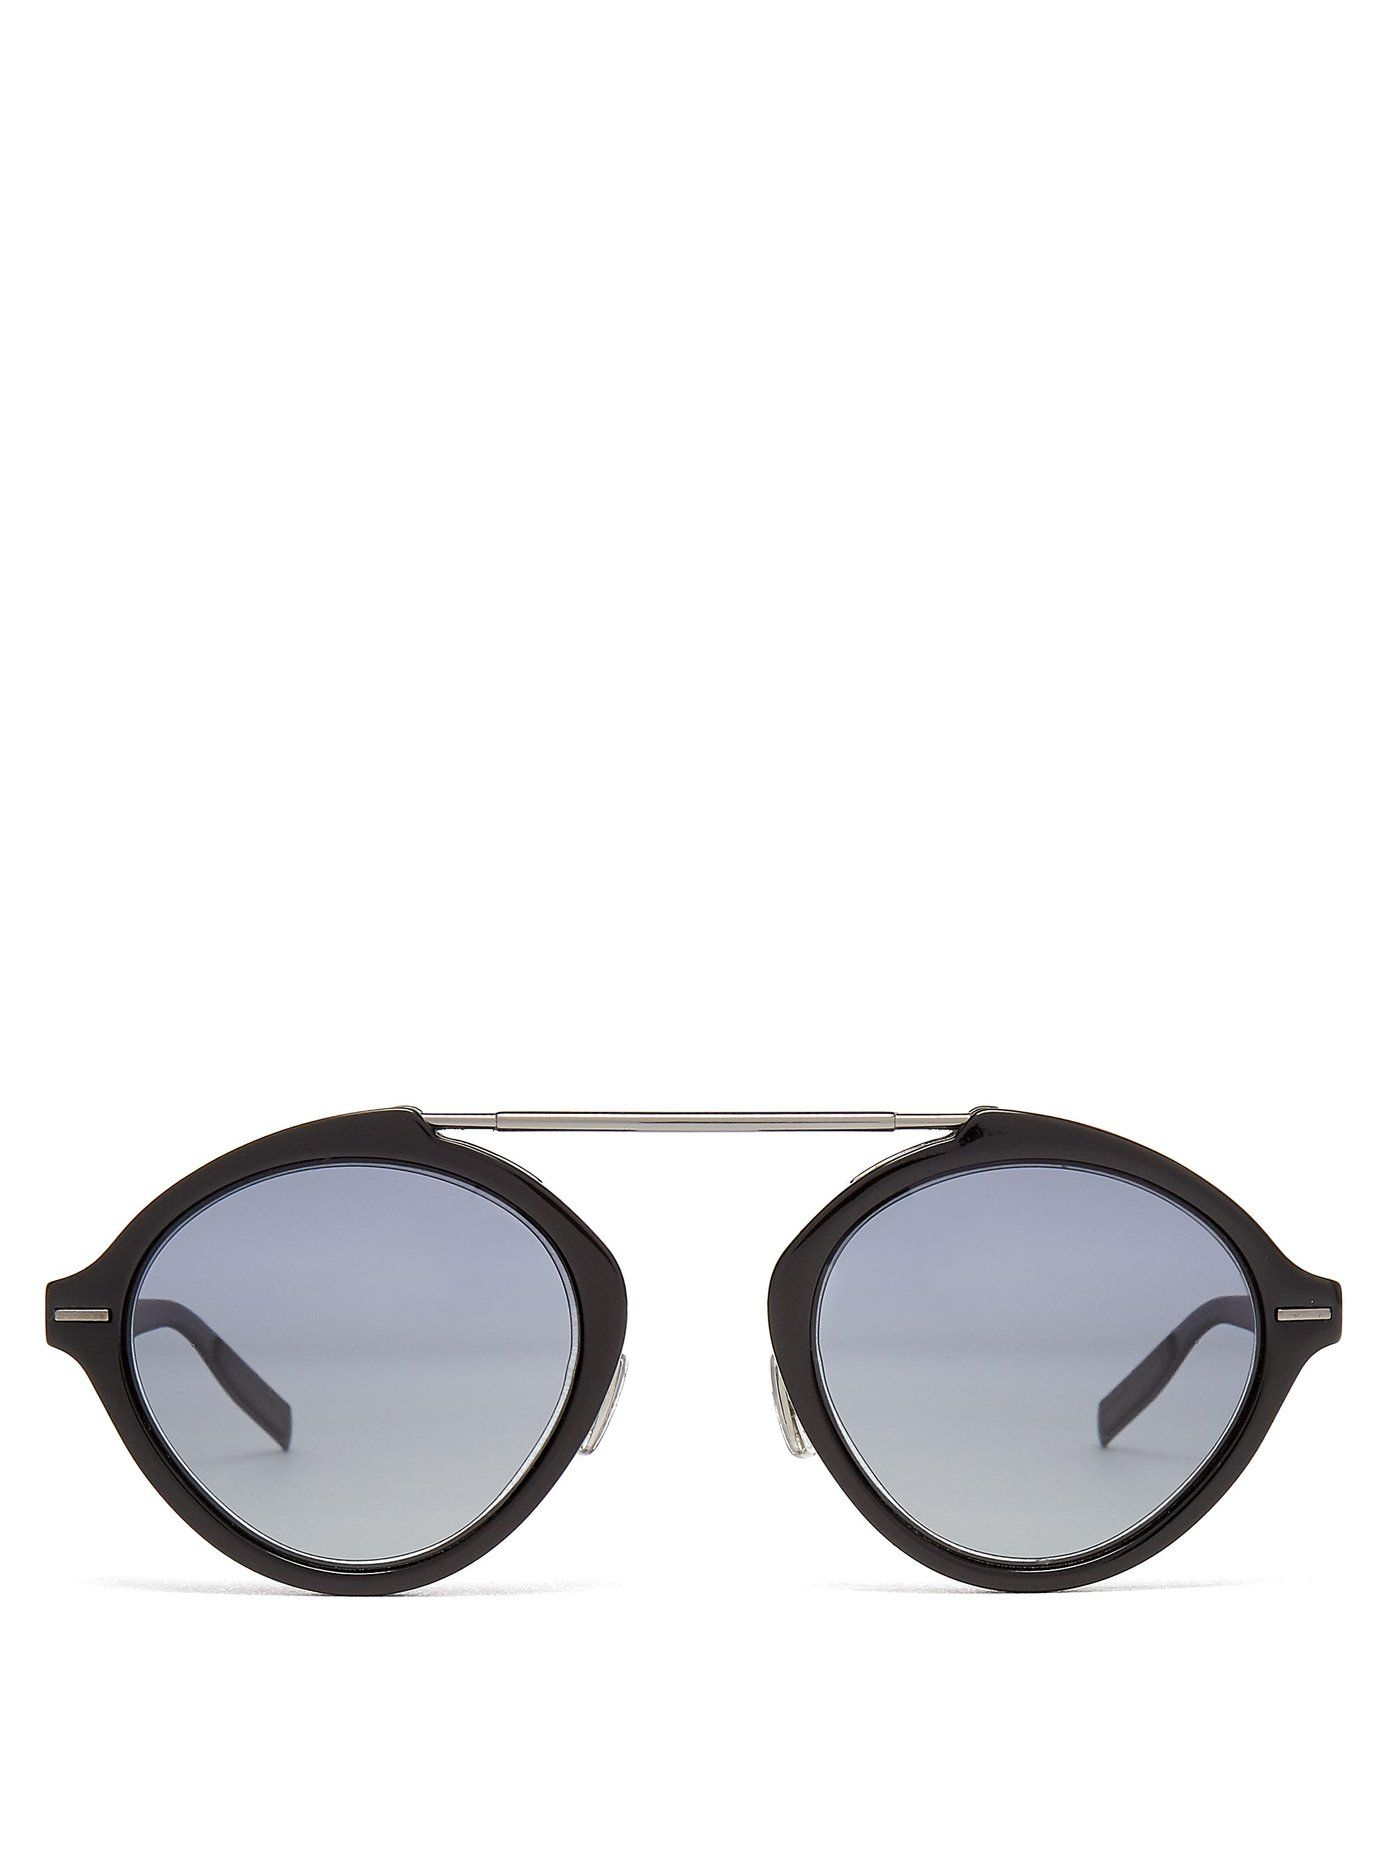 1b909cff1d4f3 Dior Homme System round-frame sunglasses